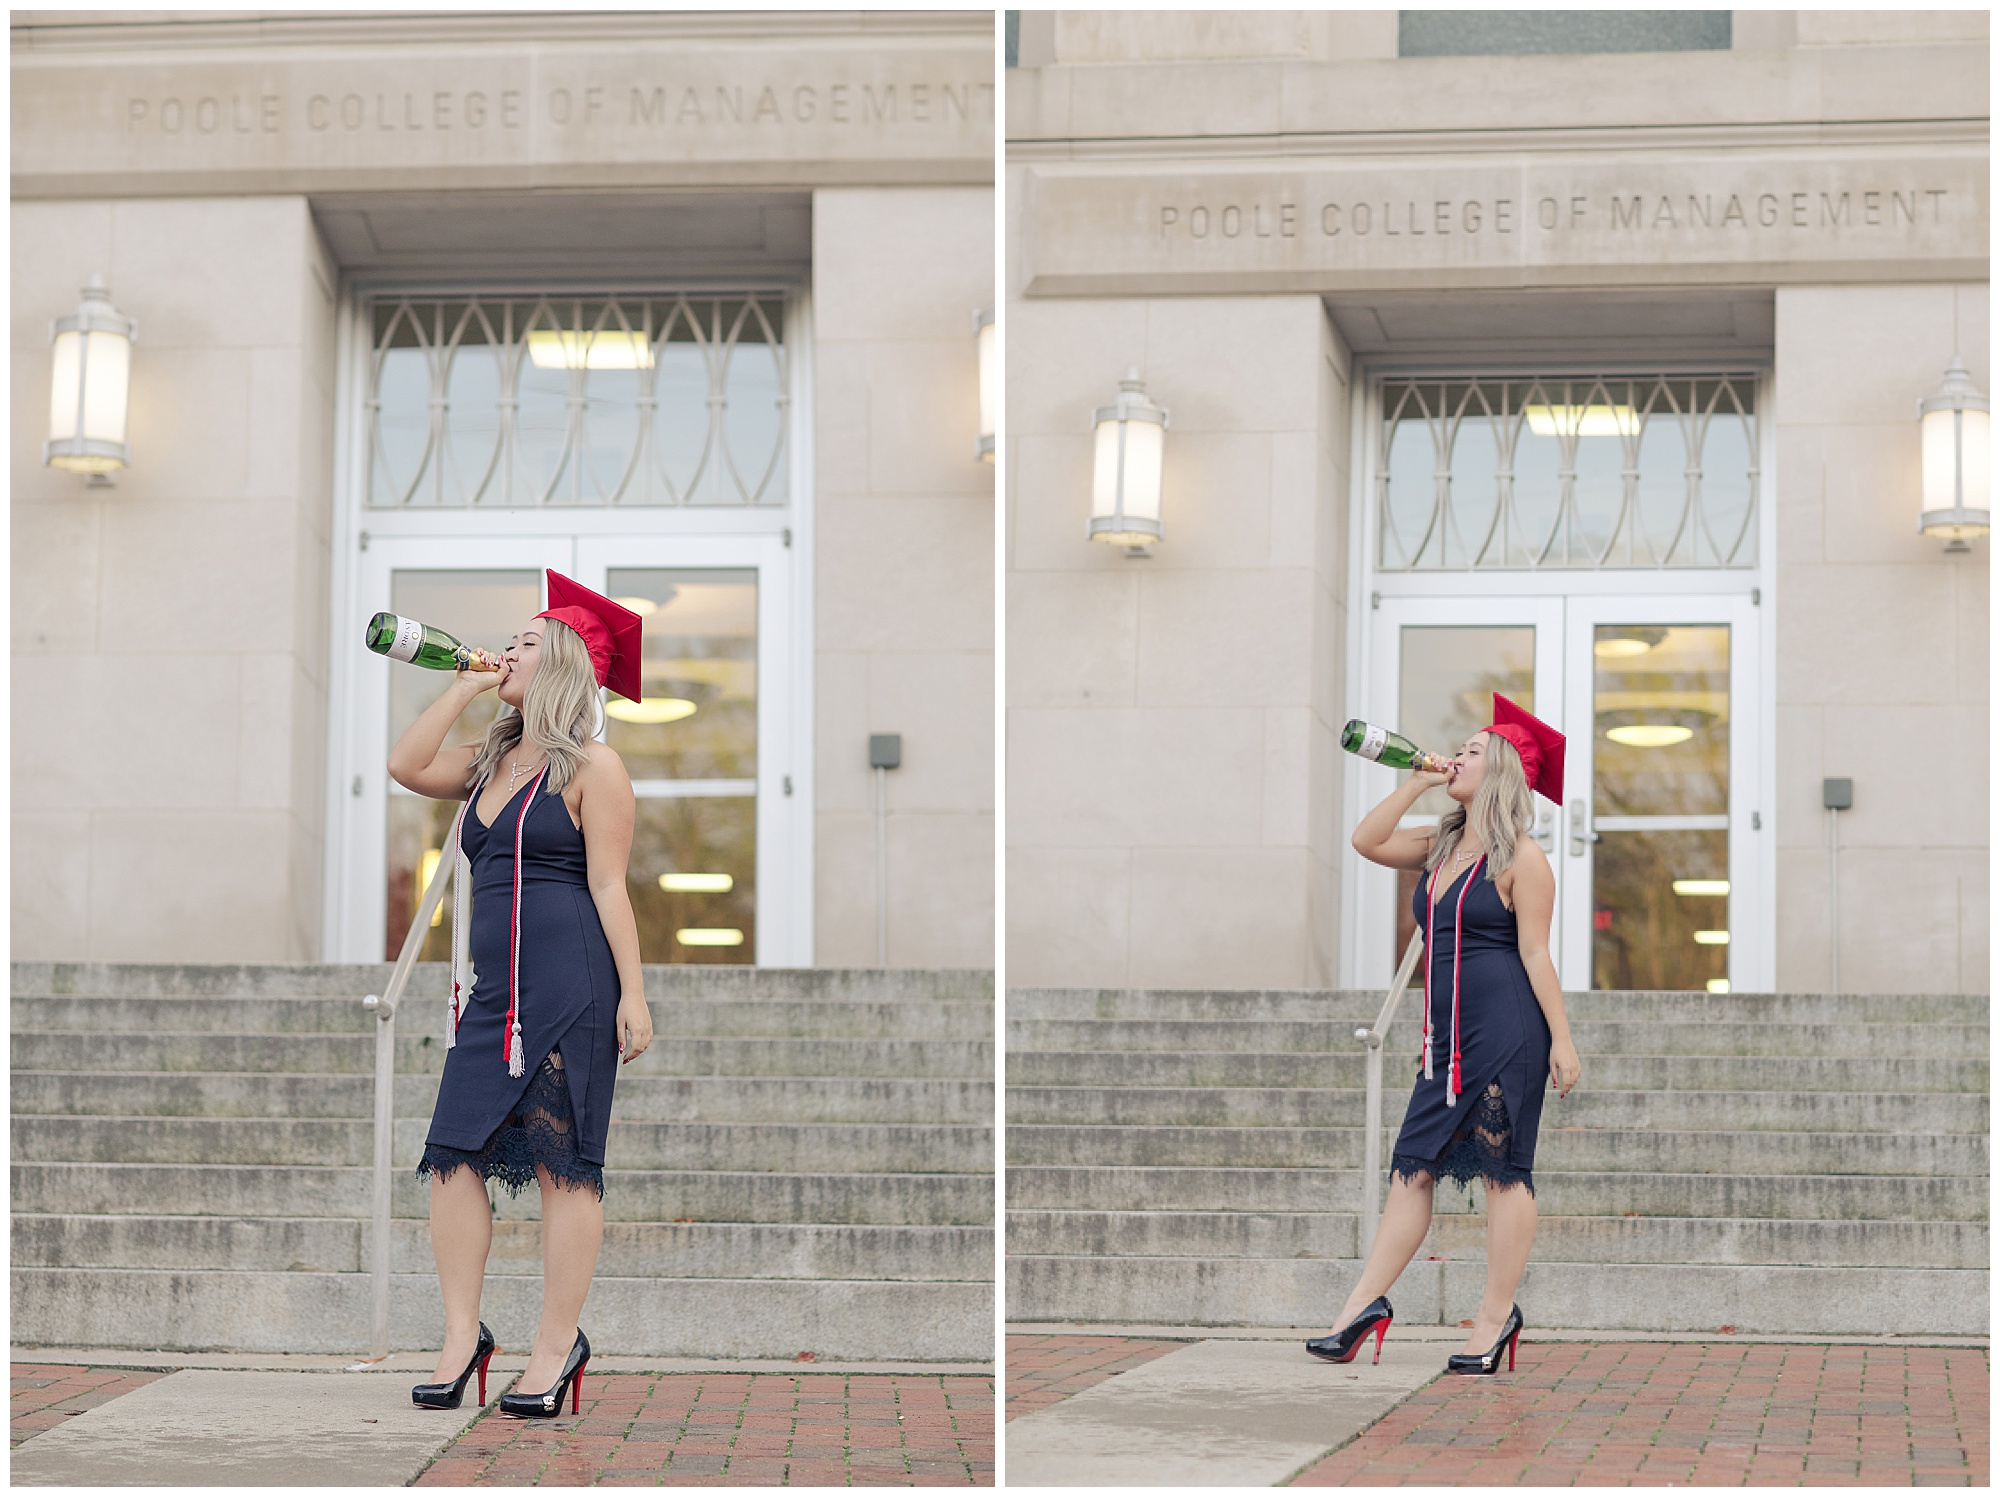 Raleigh_North_Carolina_Senior_NC_Couple_University_Photographer_Graduation-95.jpg